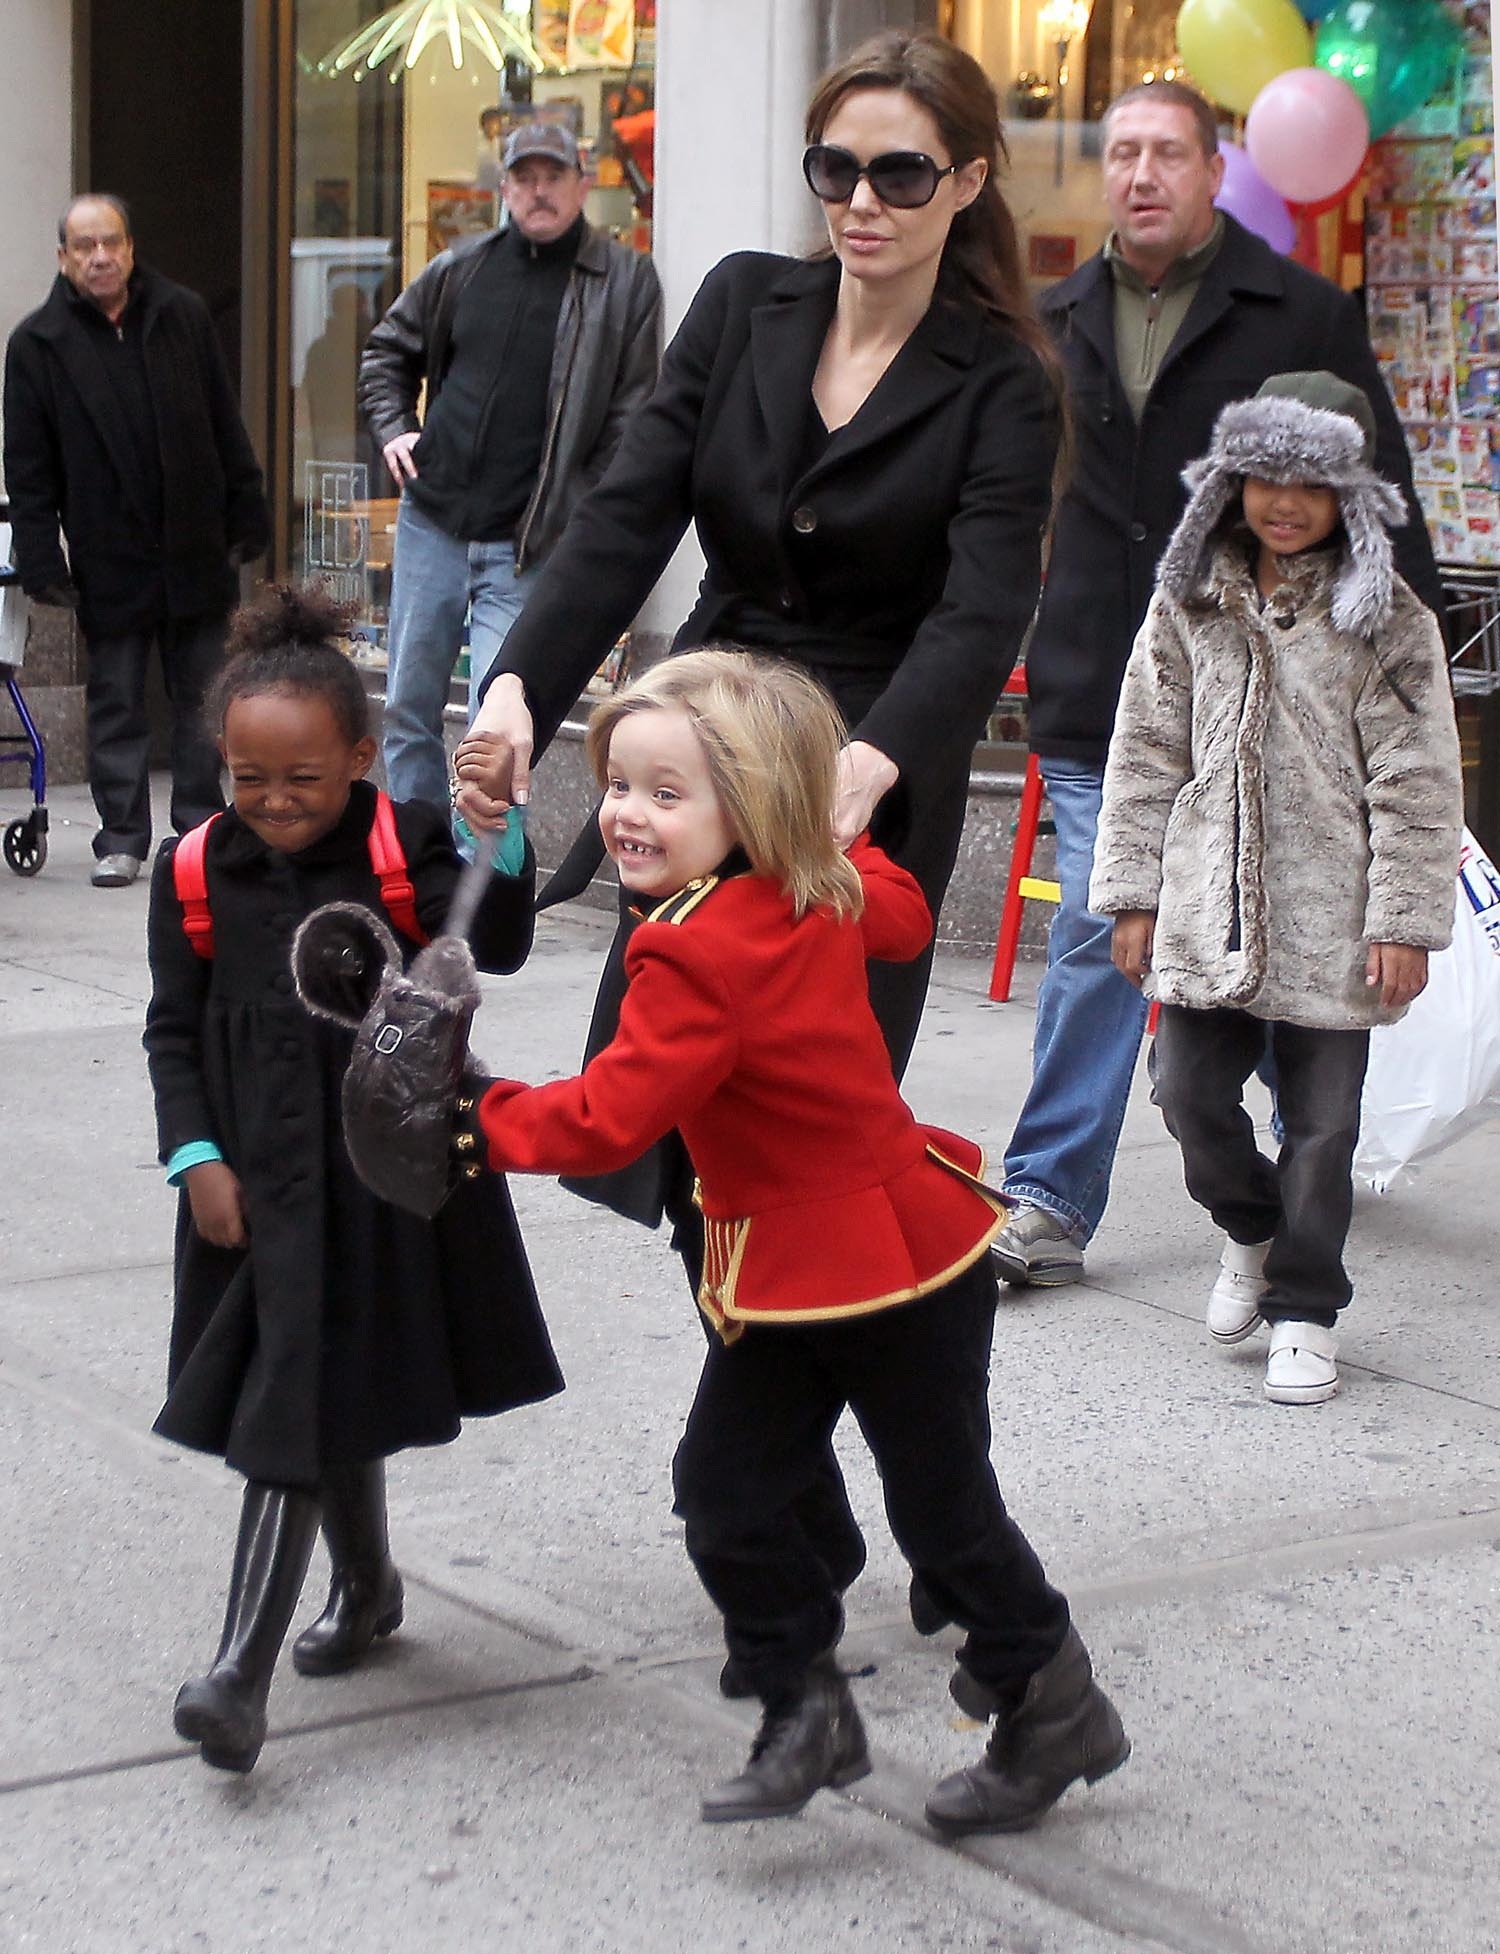 Angelina Jolie with her children shopping in New York